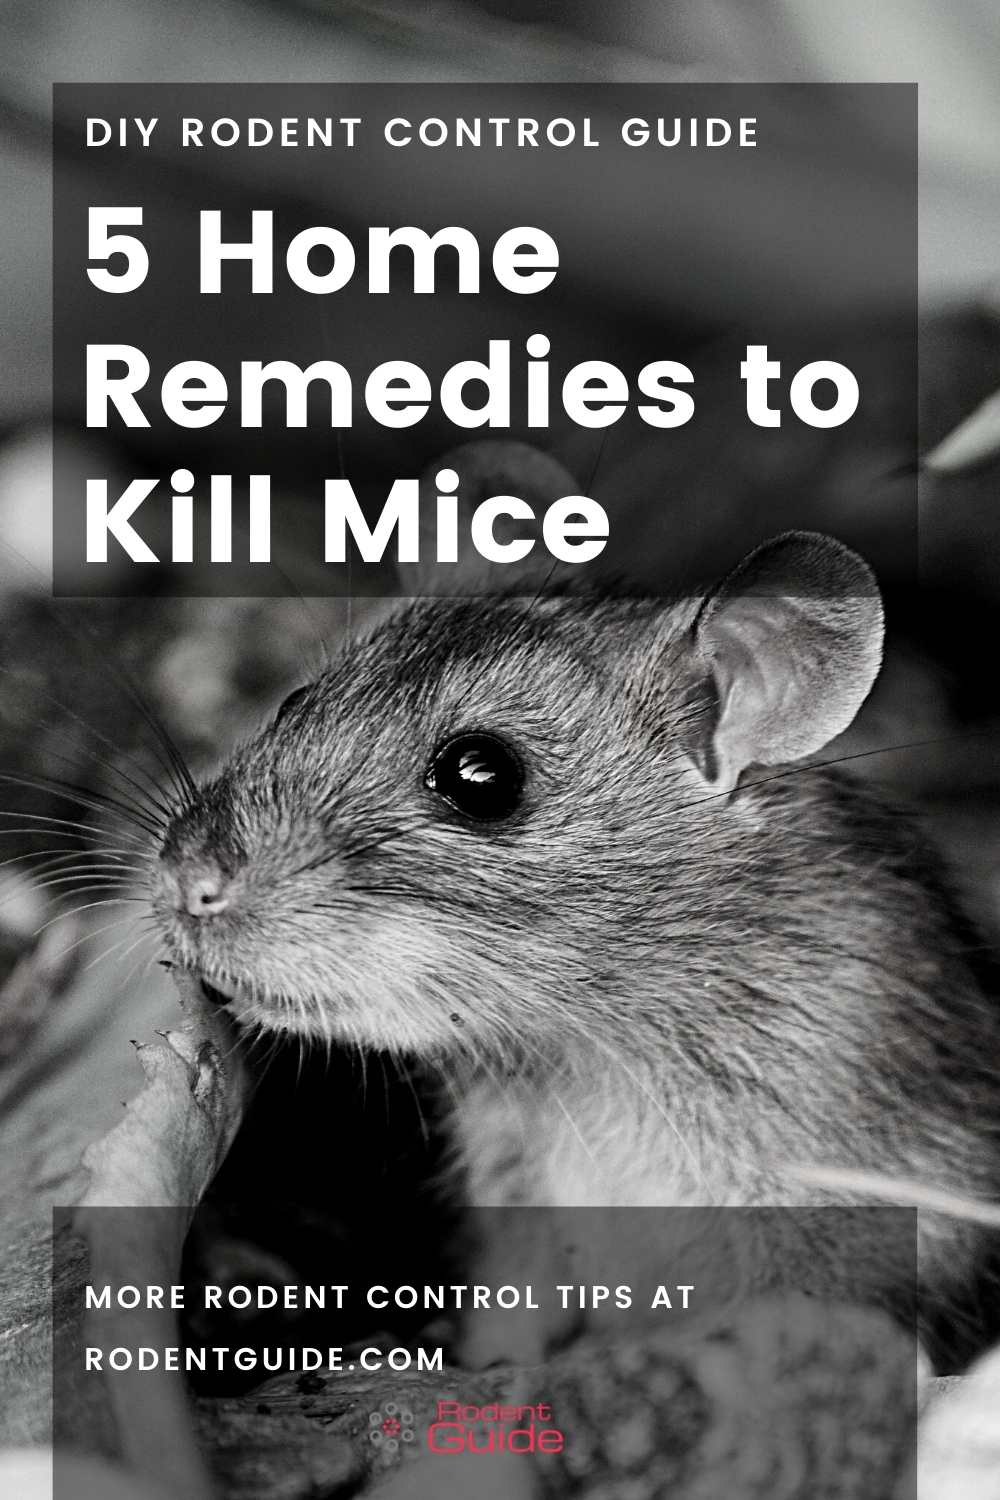 5 Home Remedies to Kill Mice